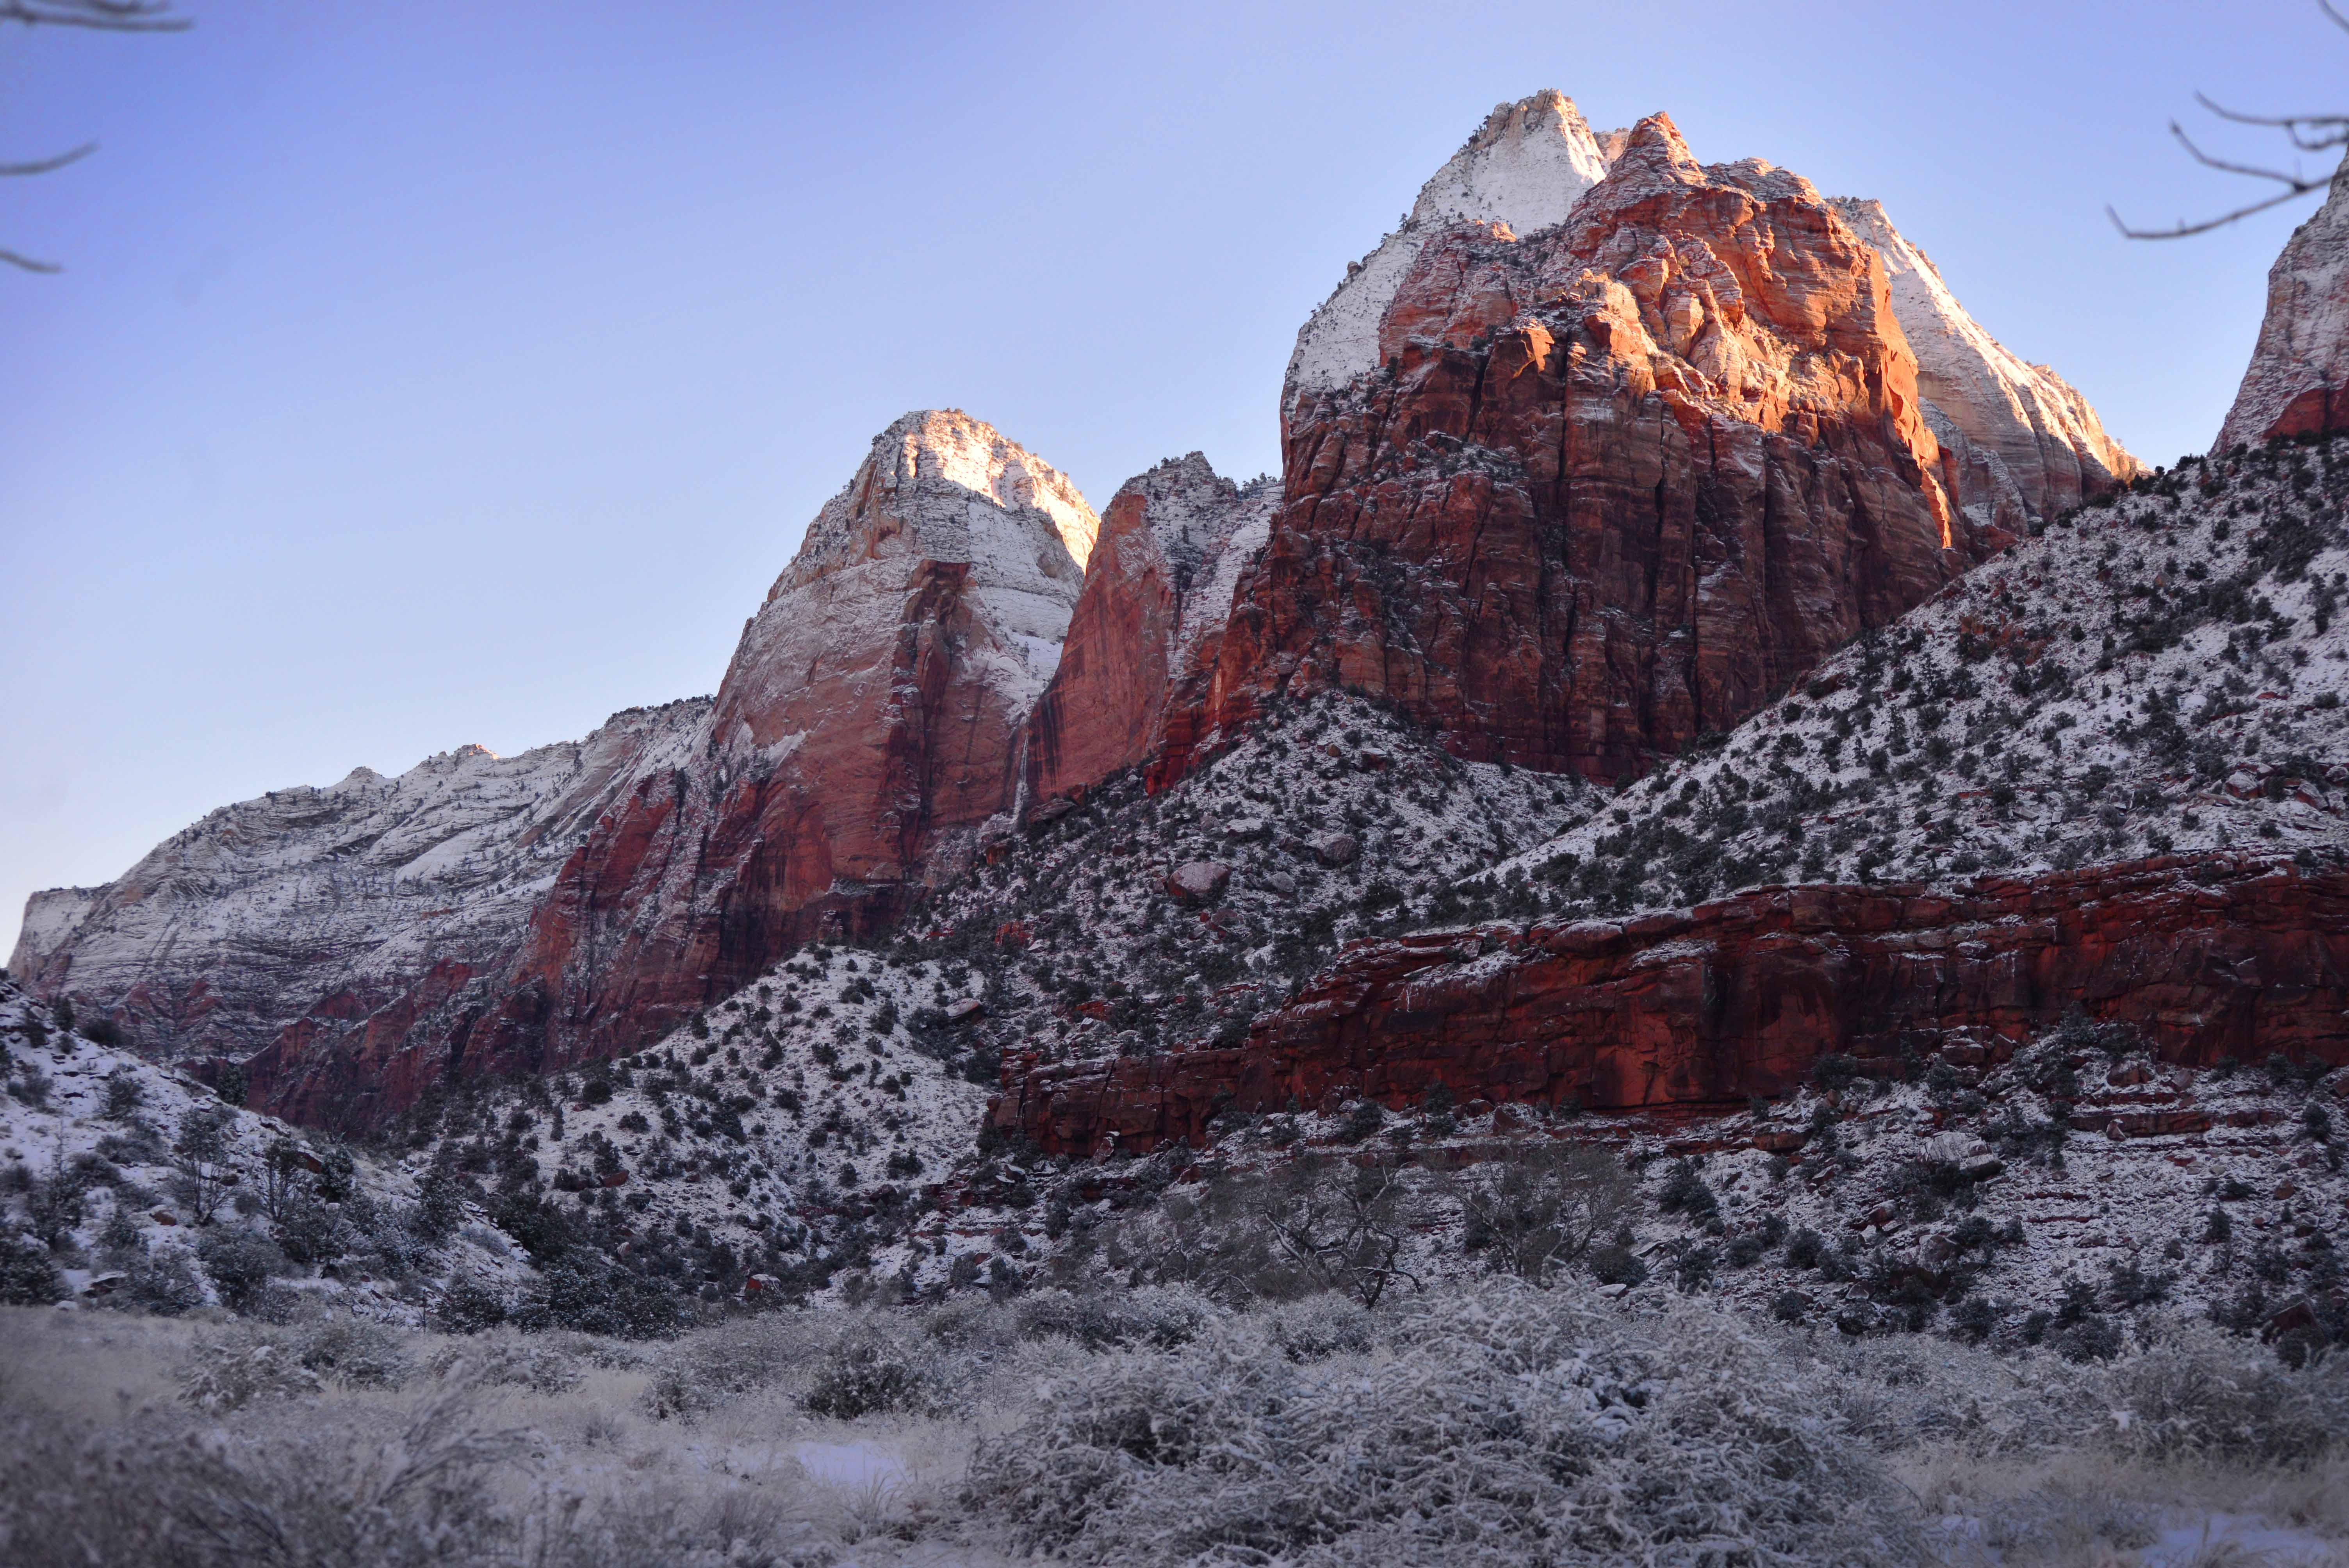 Zion Canyon in winter